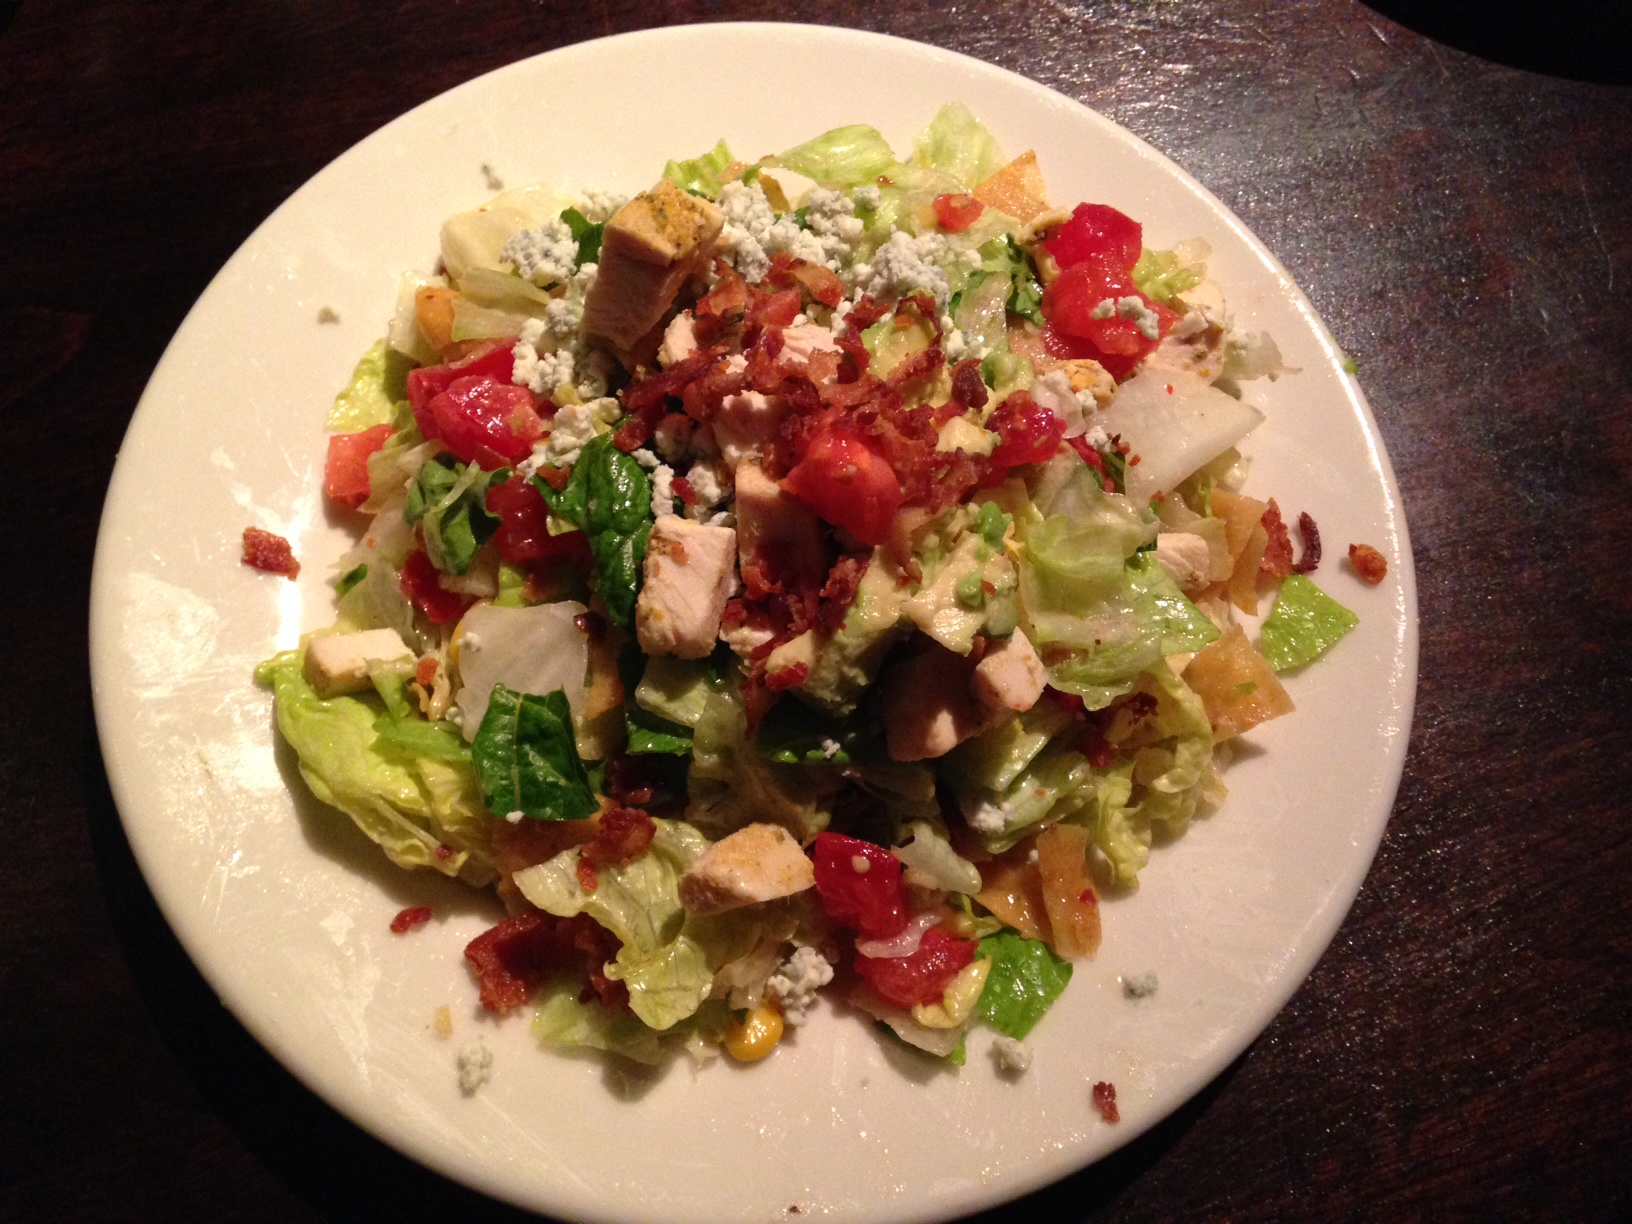 Wildfire - Oakbrook, IL - Chopped Salad - Dec 2013